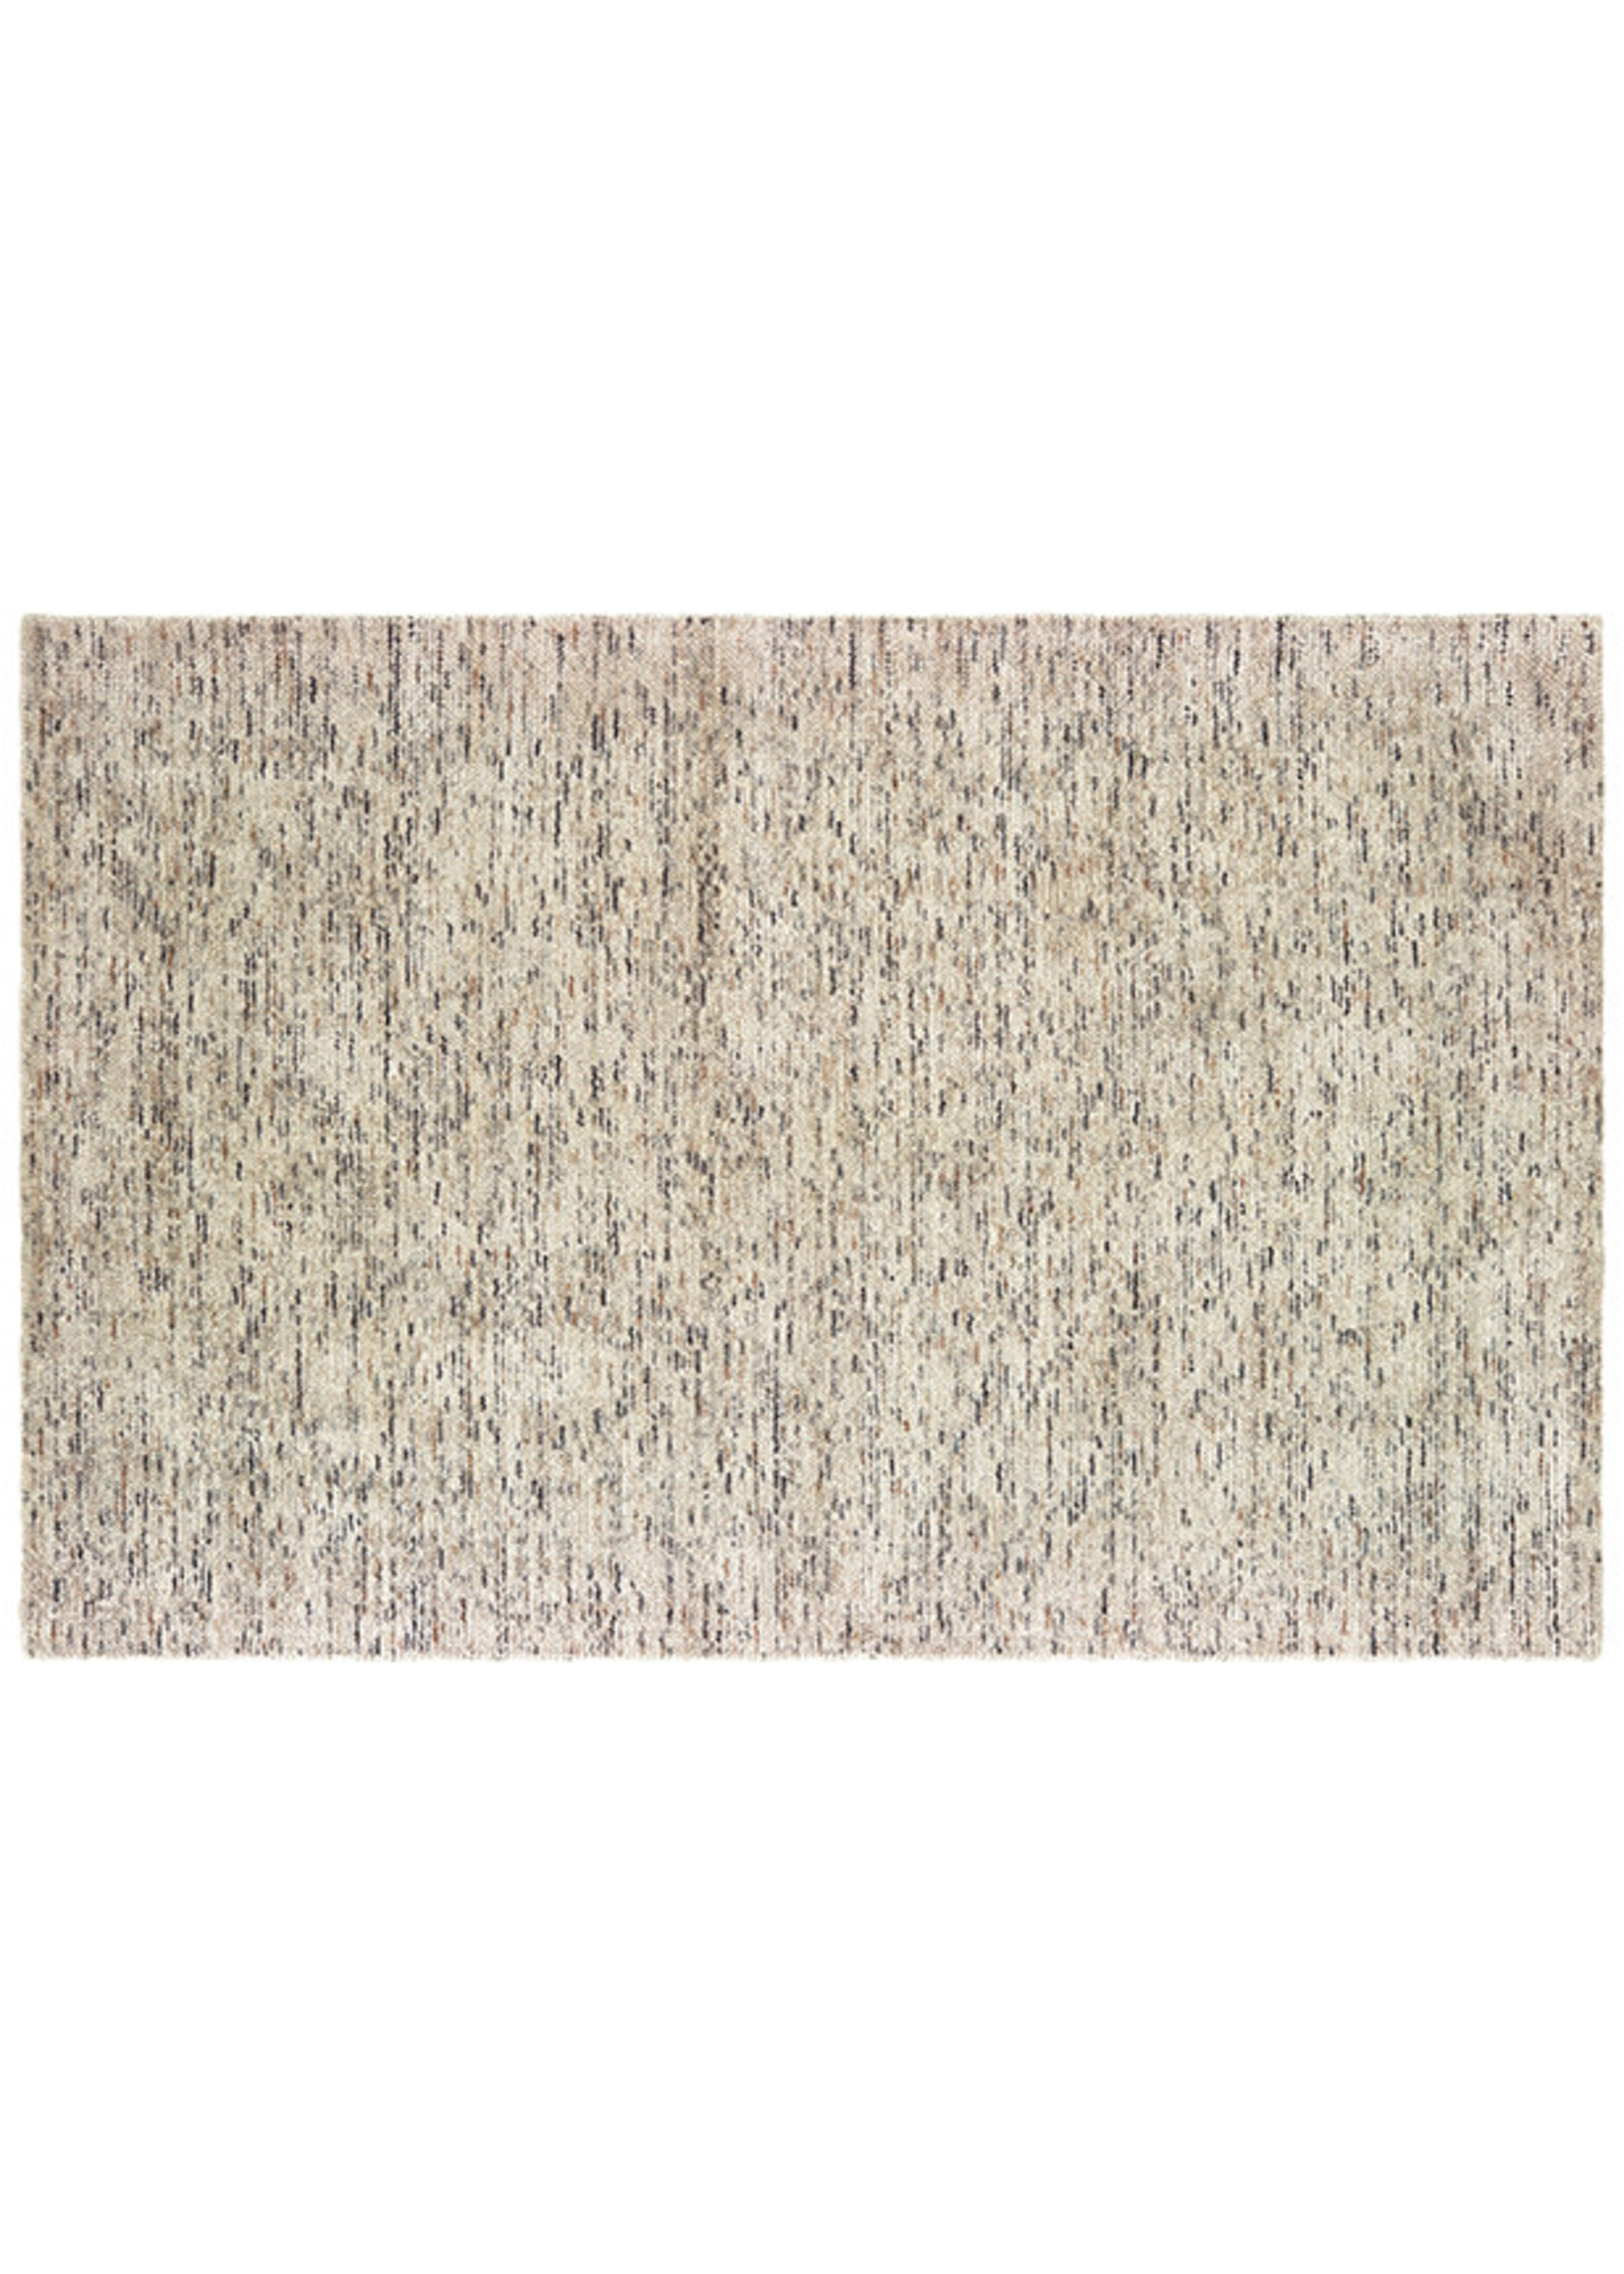 LUCENT TOMMY BAHAMA RUG